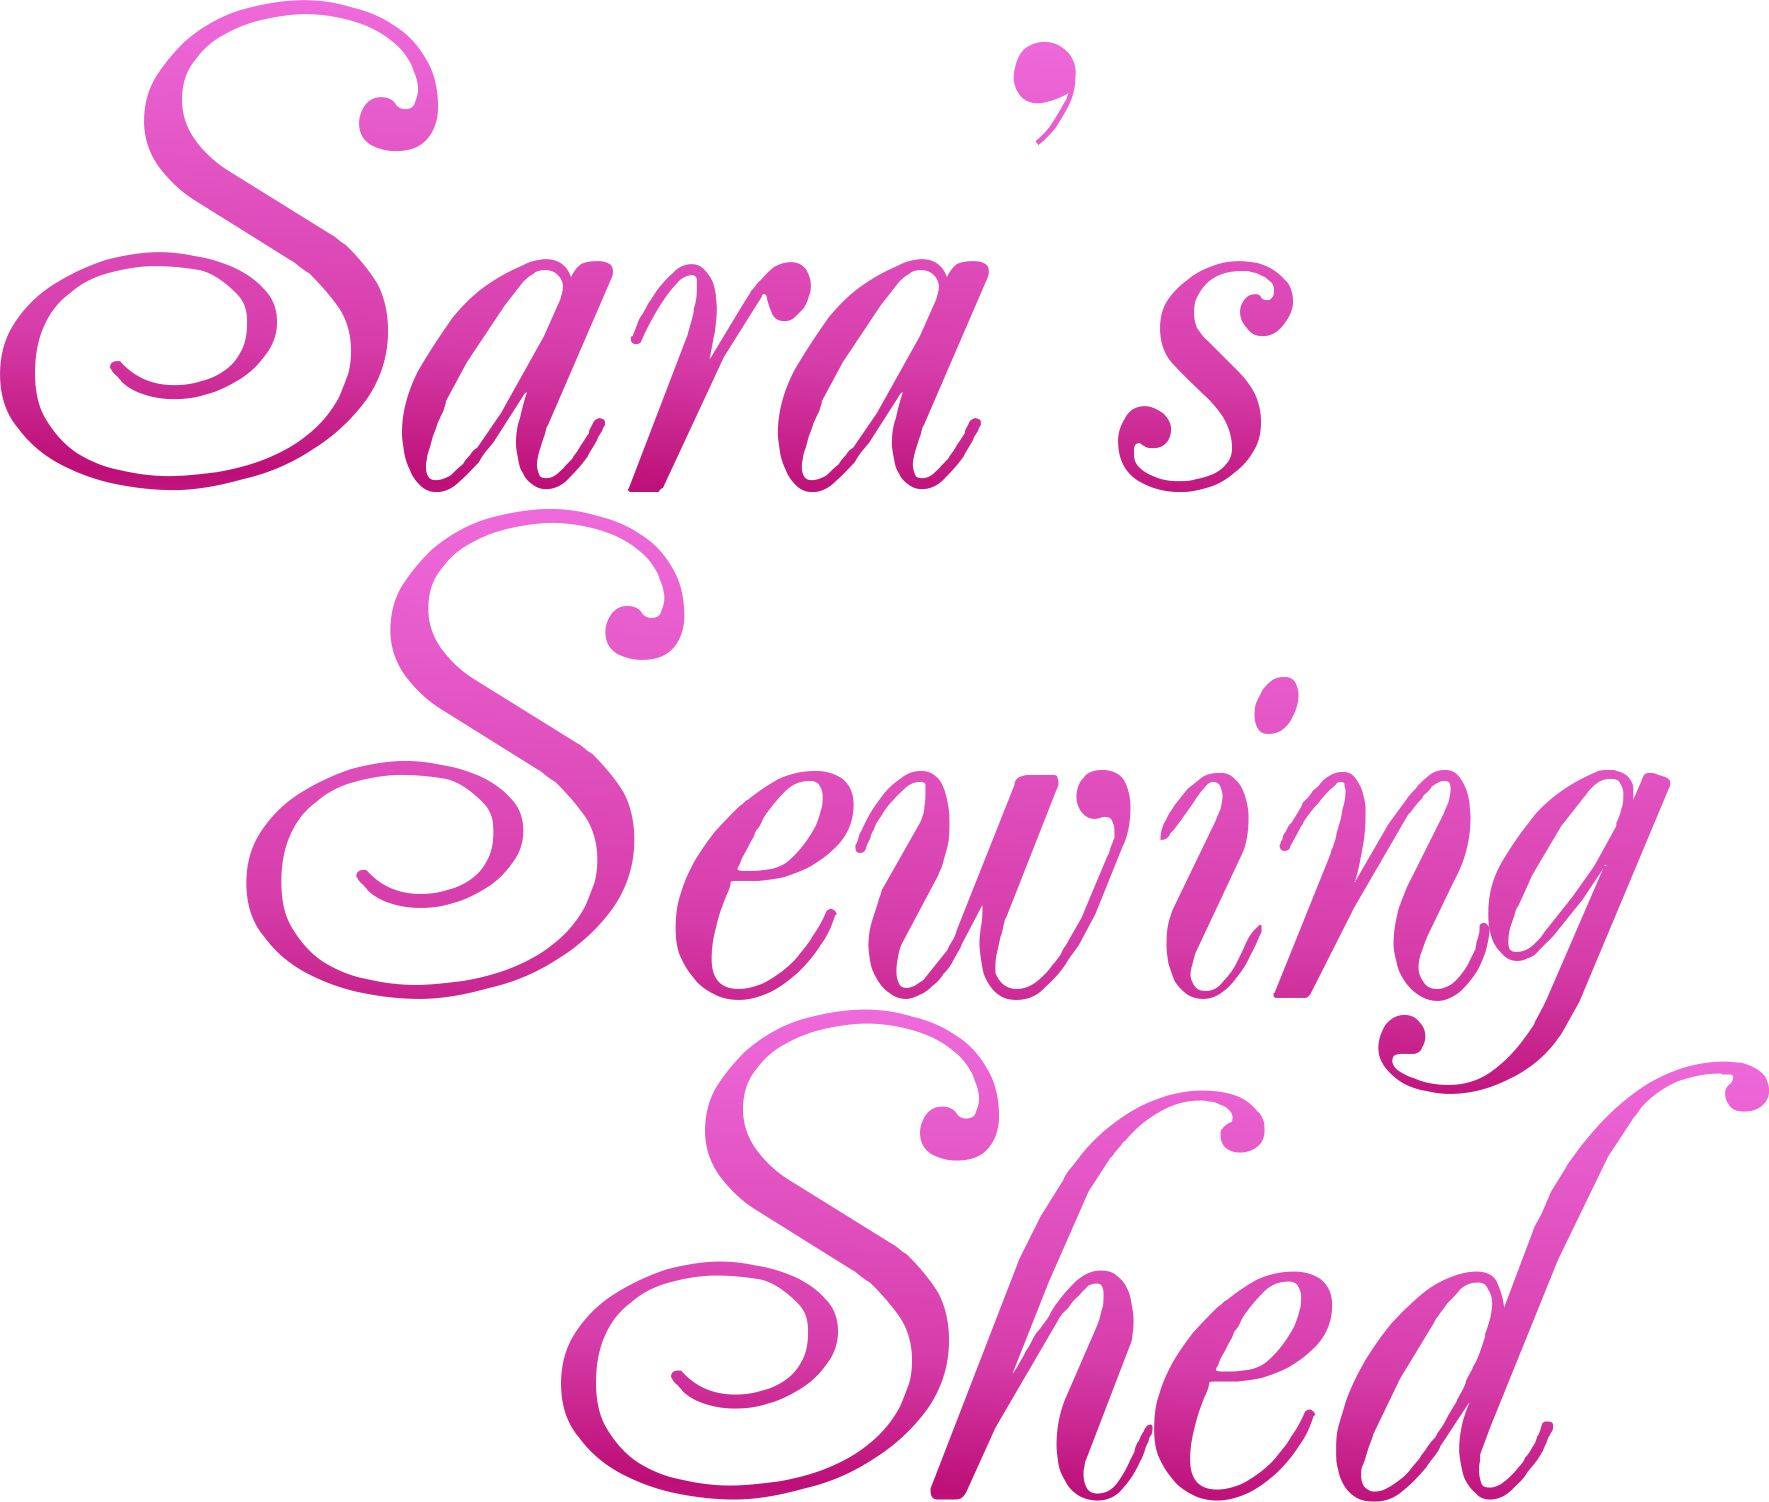 sara-sewing-shed